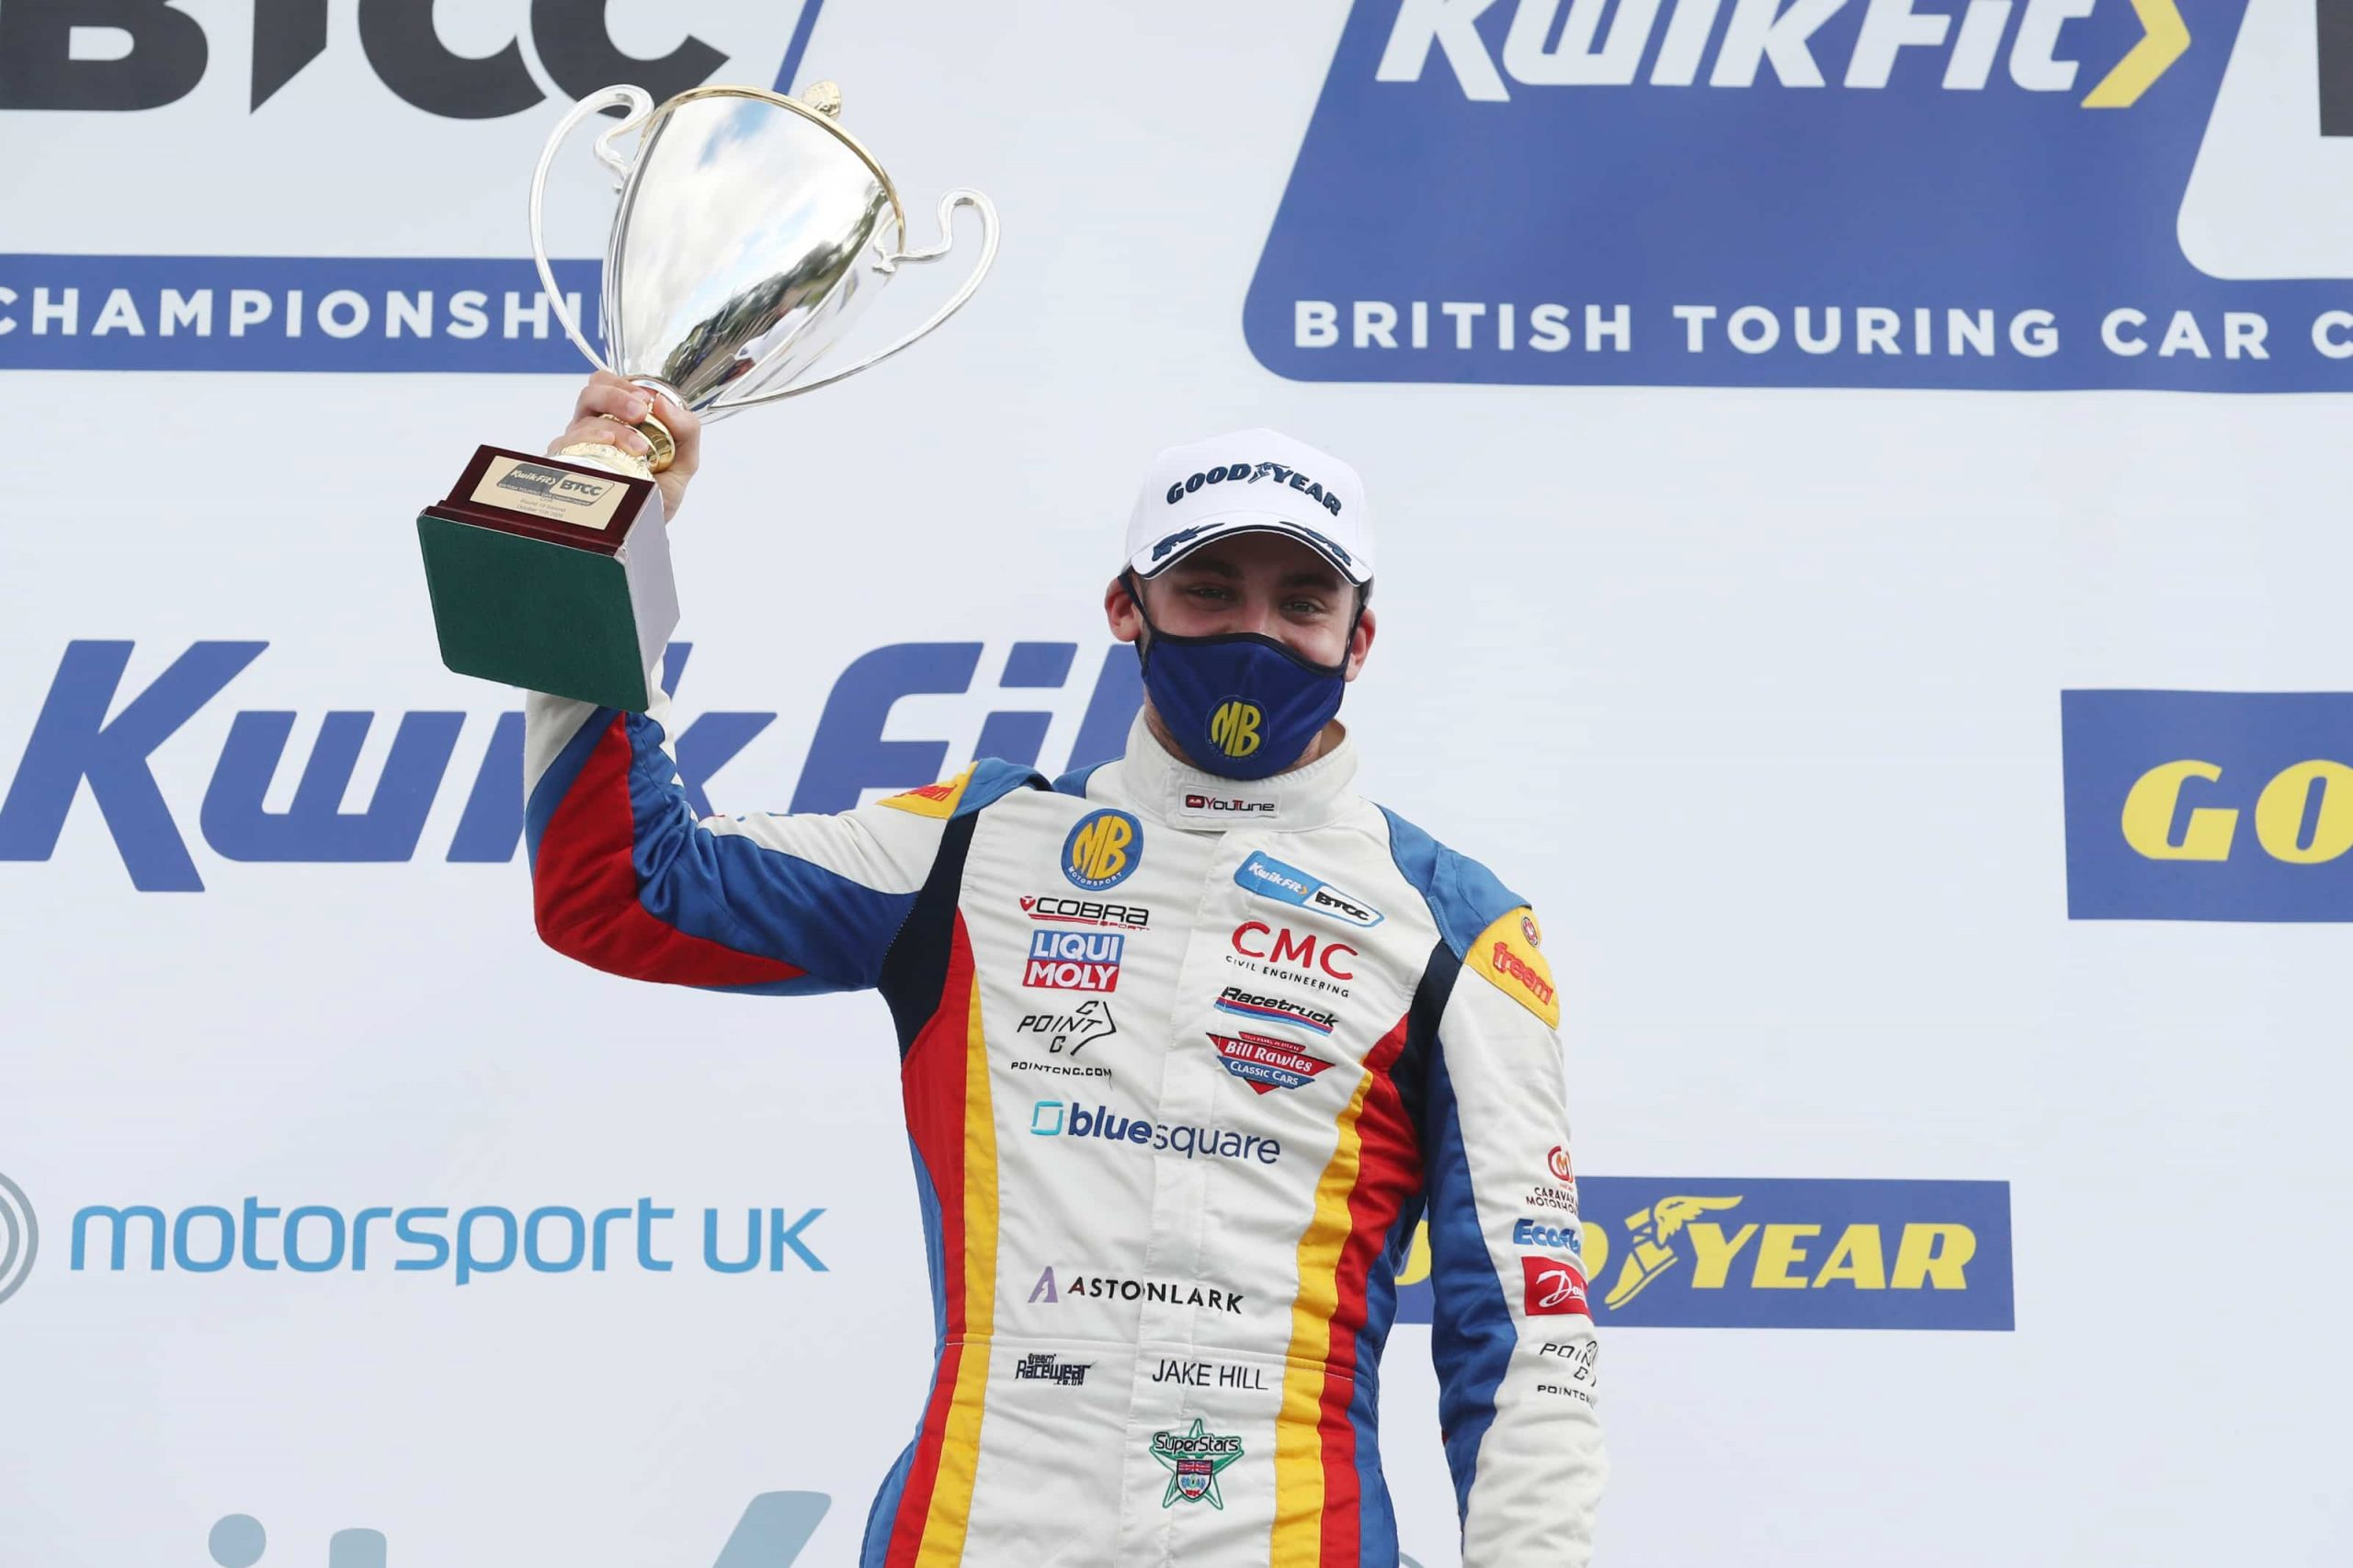 Double podium delight for MB Motorsport accelerated by Blue Square at Croft